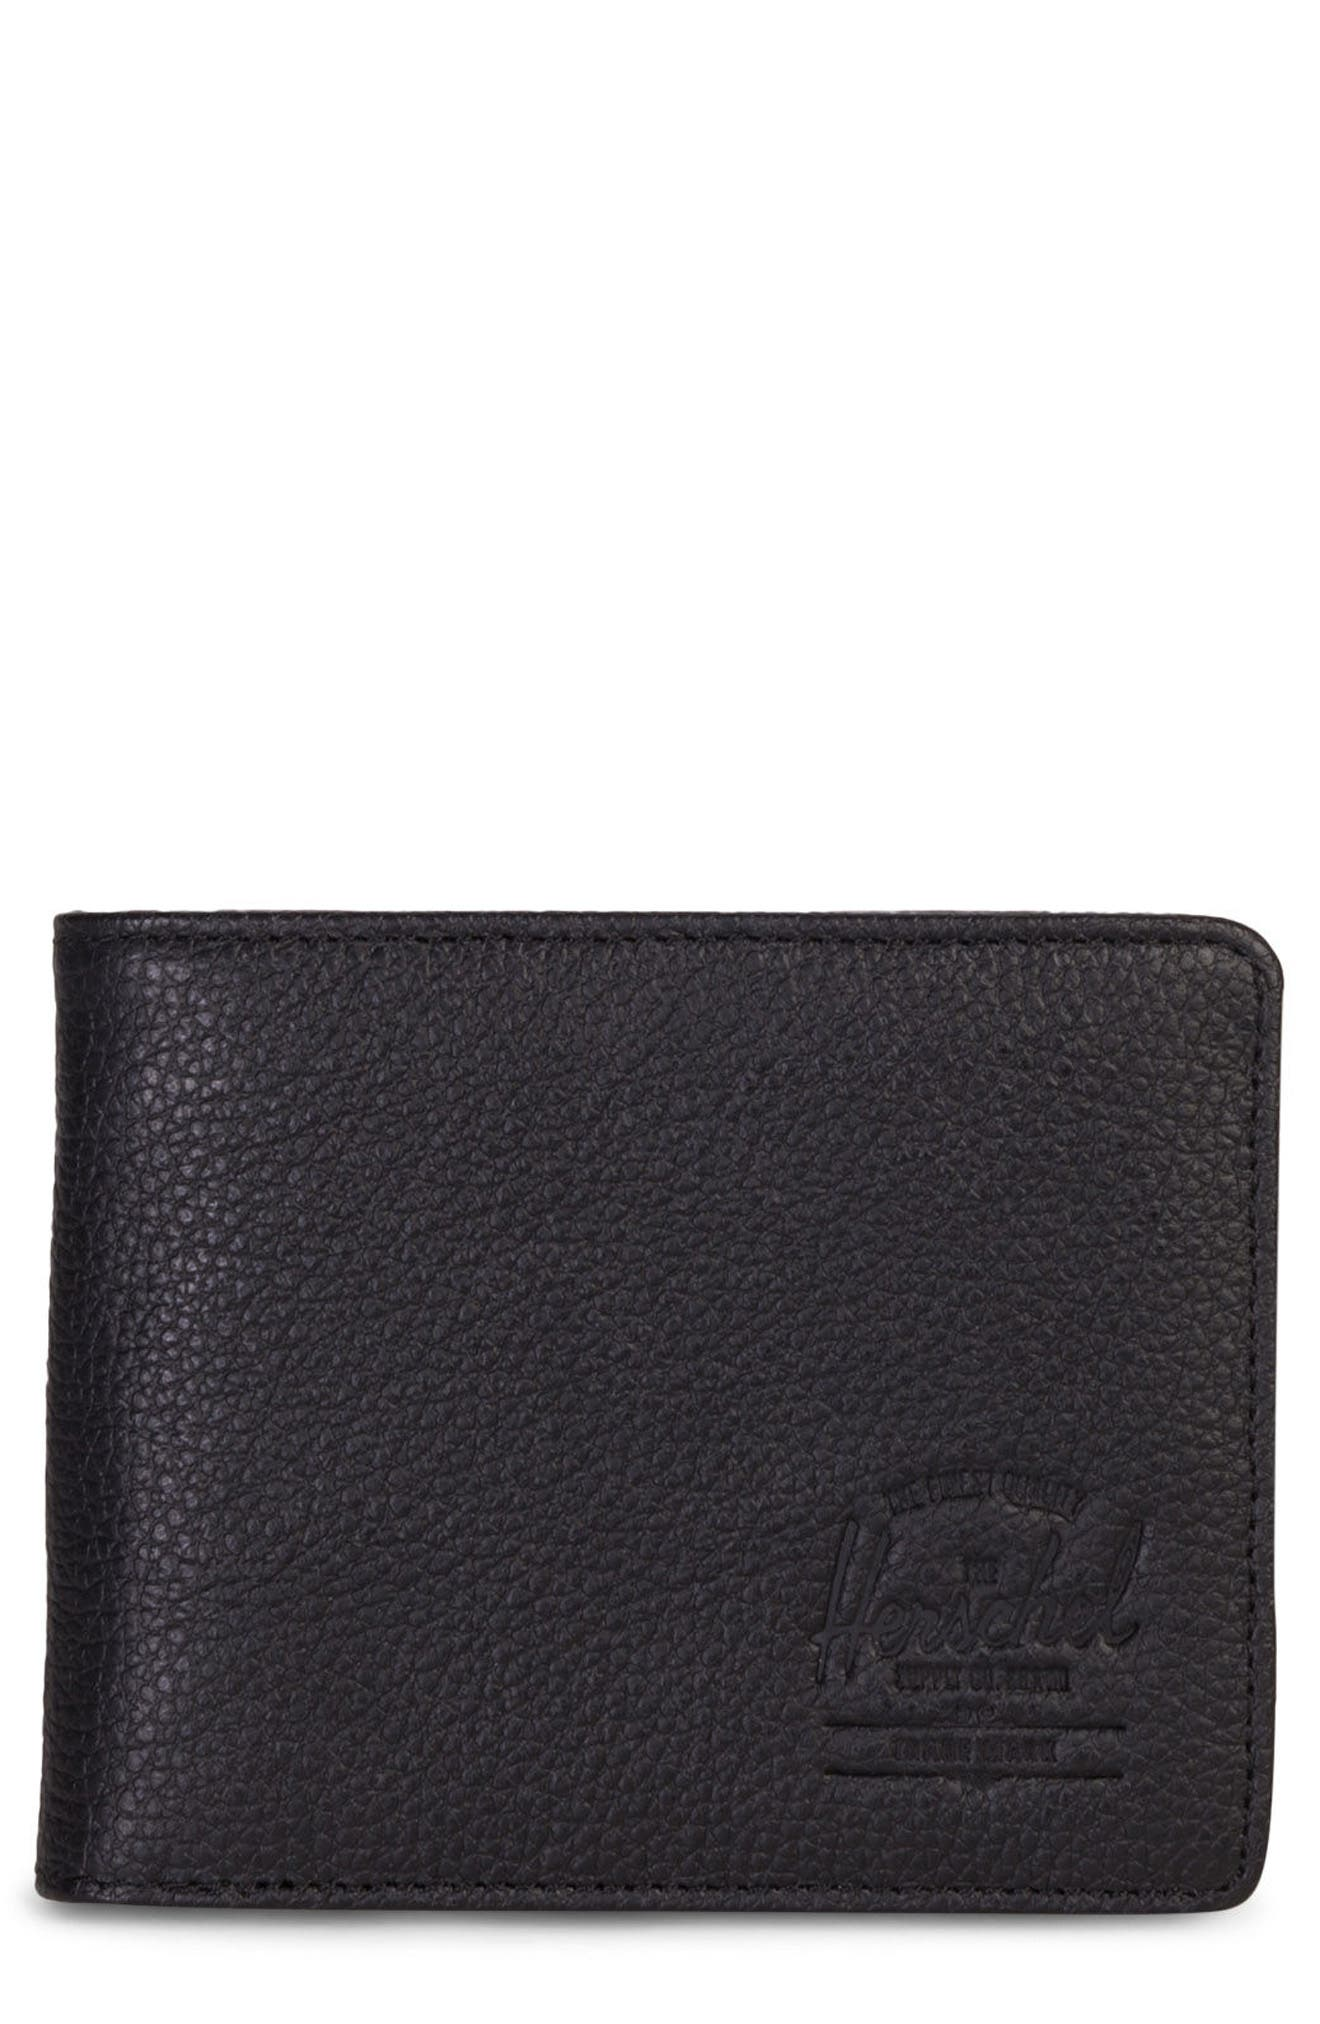 Hank Leather Wallet,                             Main thumbnail 1, color,                             005